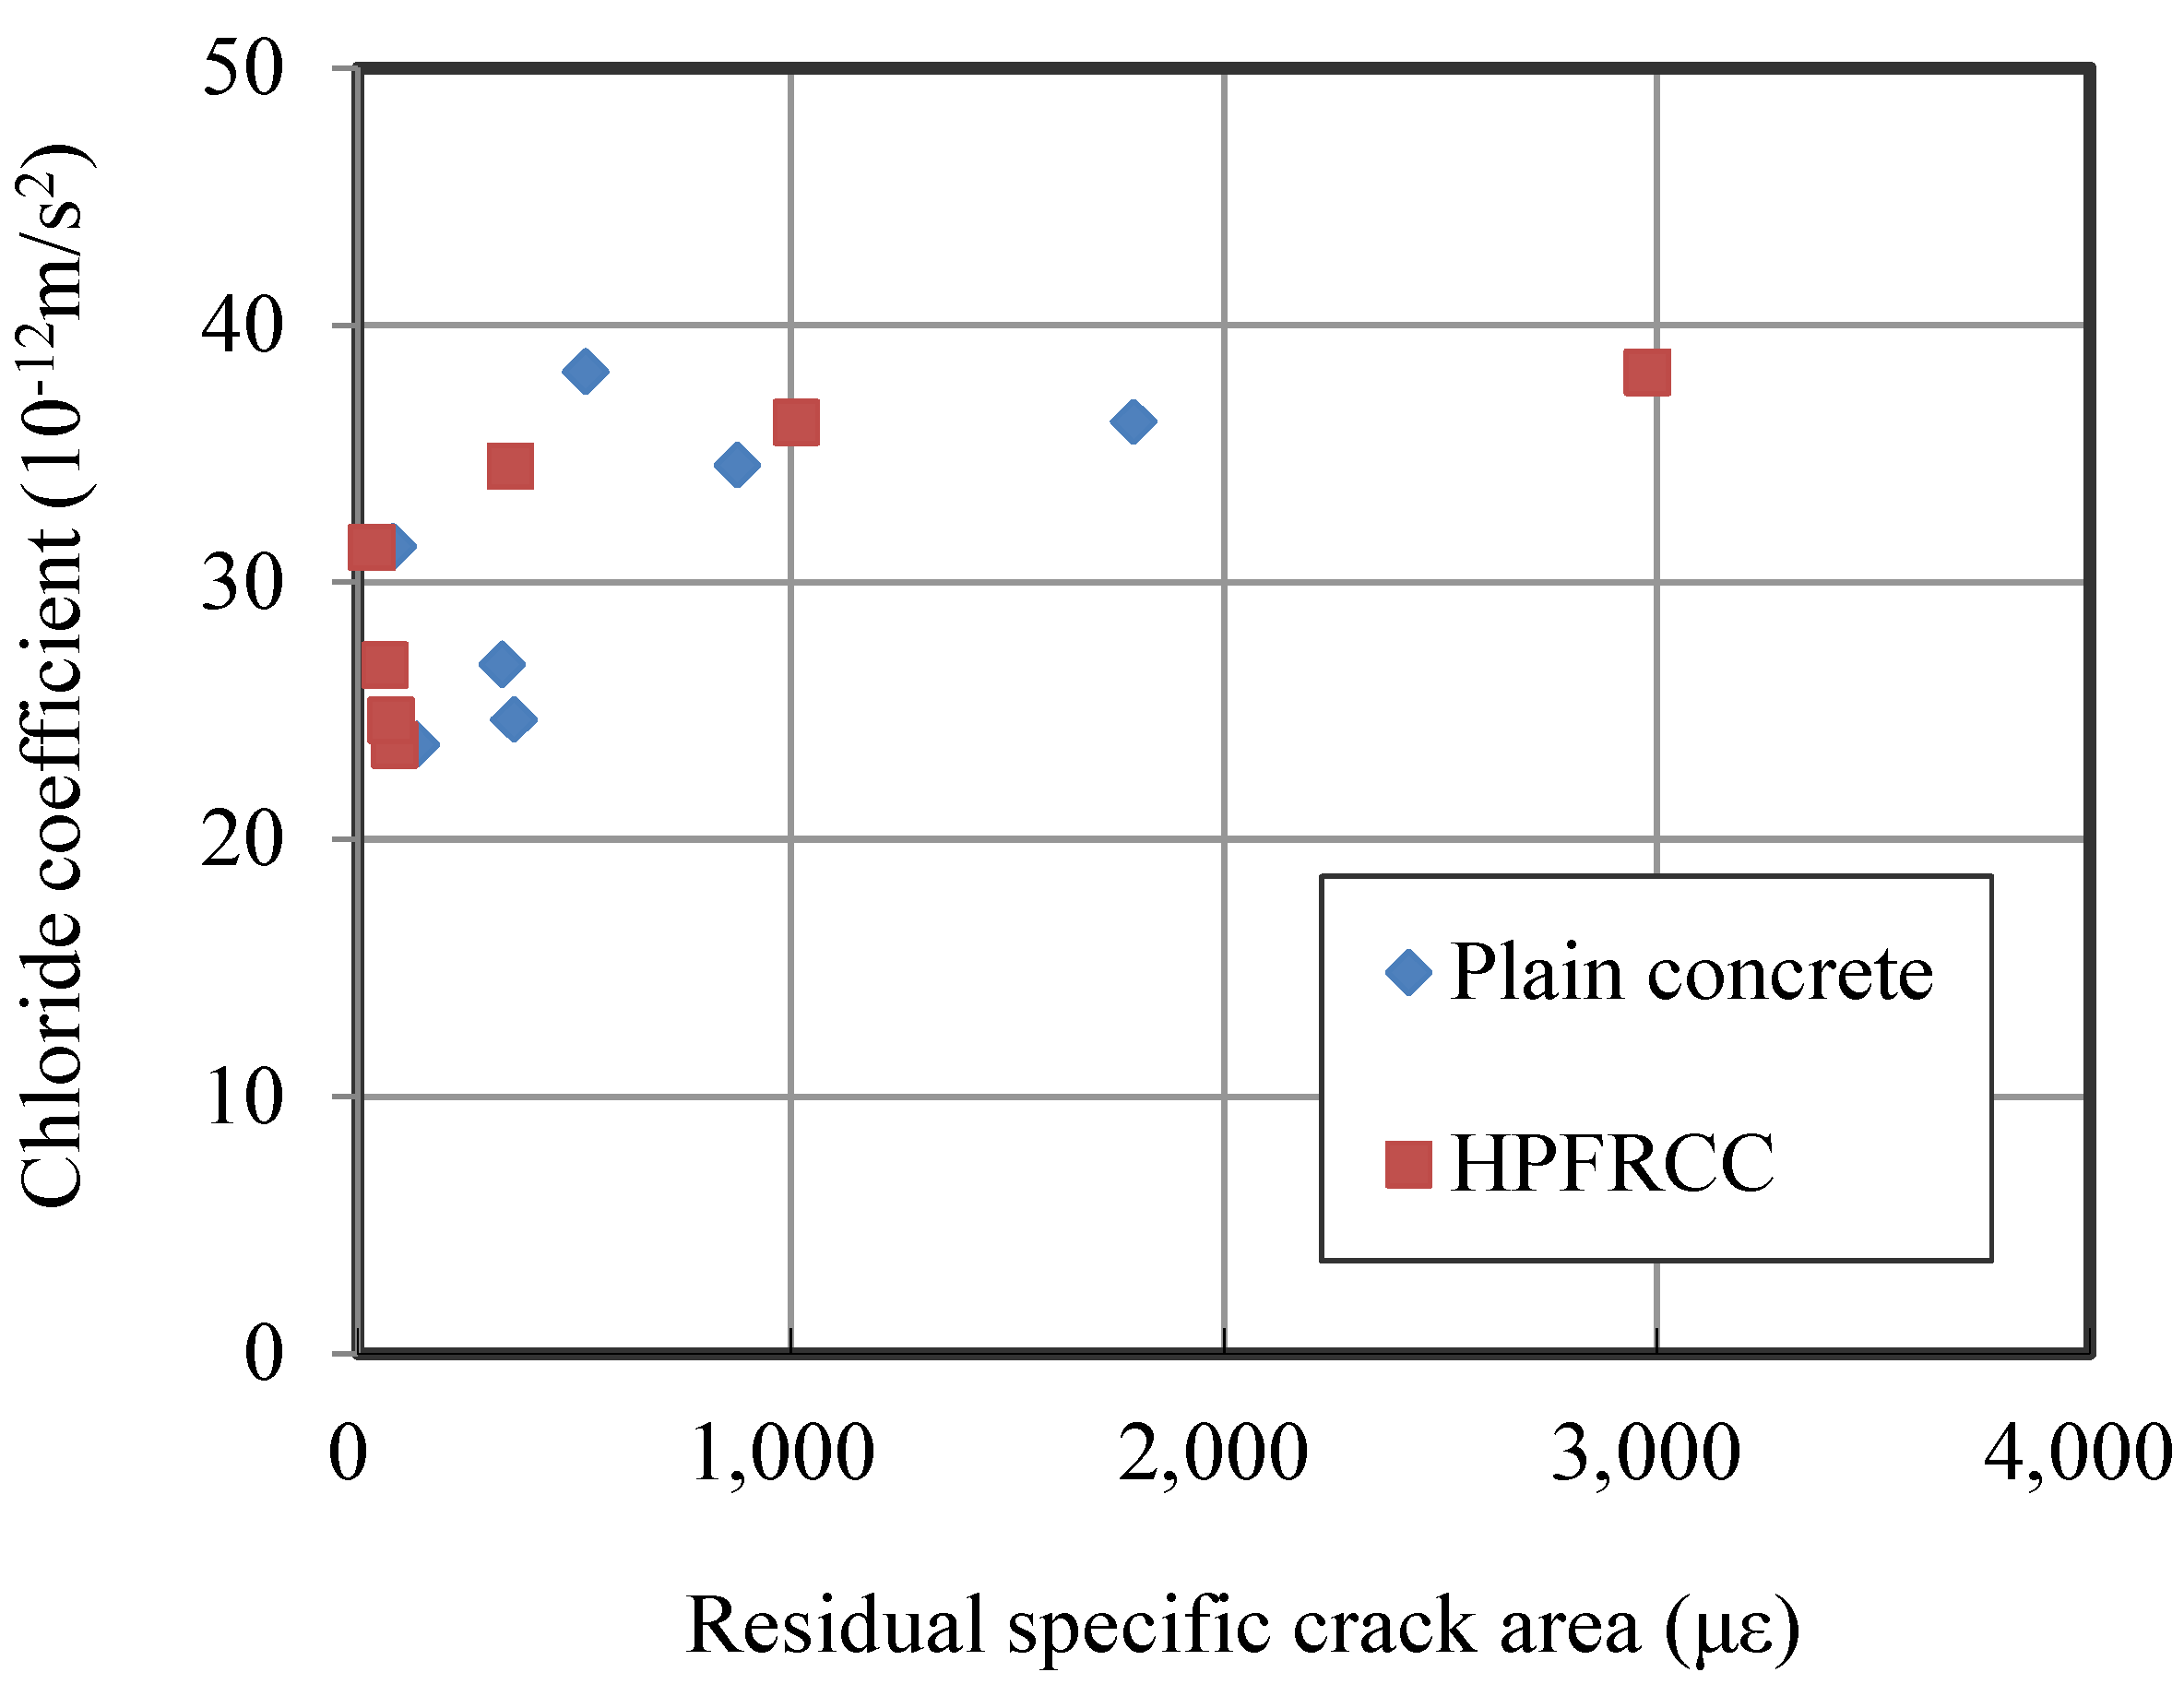 chloride permeability performance aggregate concrete Permeability properties of fine recycled aggregate concrete  aggregates, permeability, chloride  do not affect the concrete's performance regarding this .